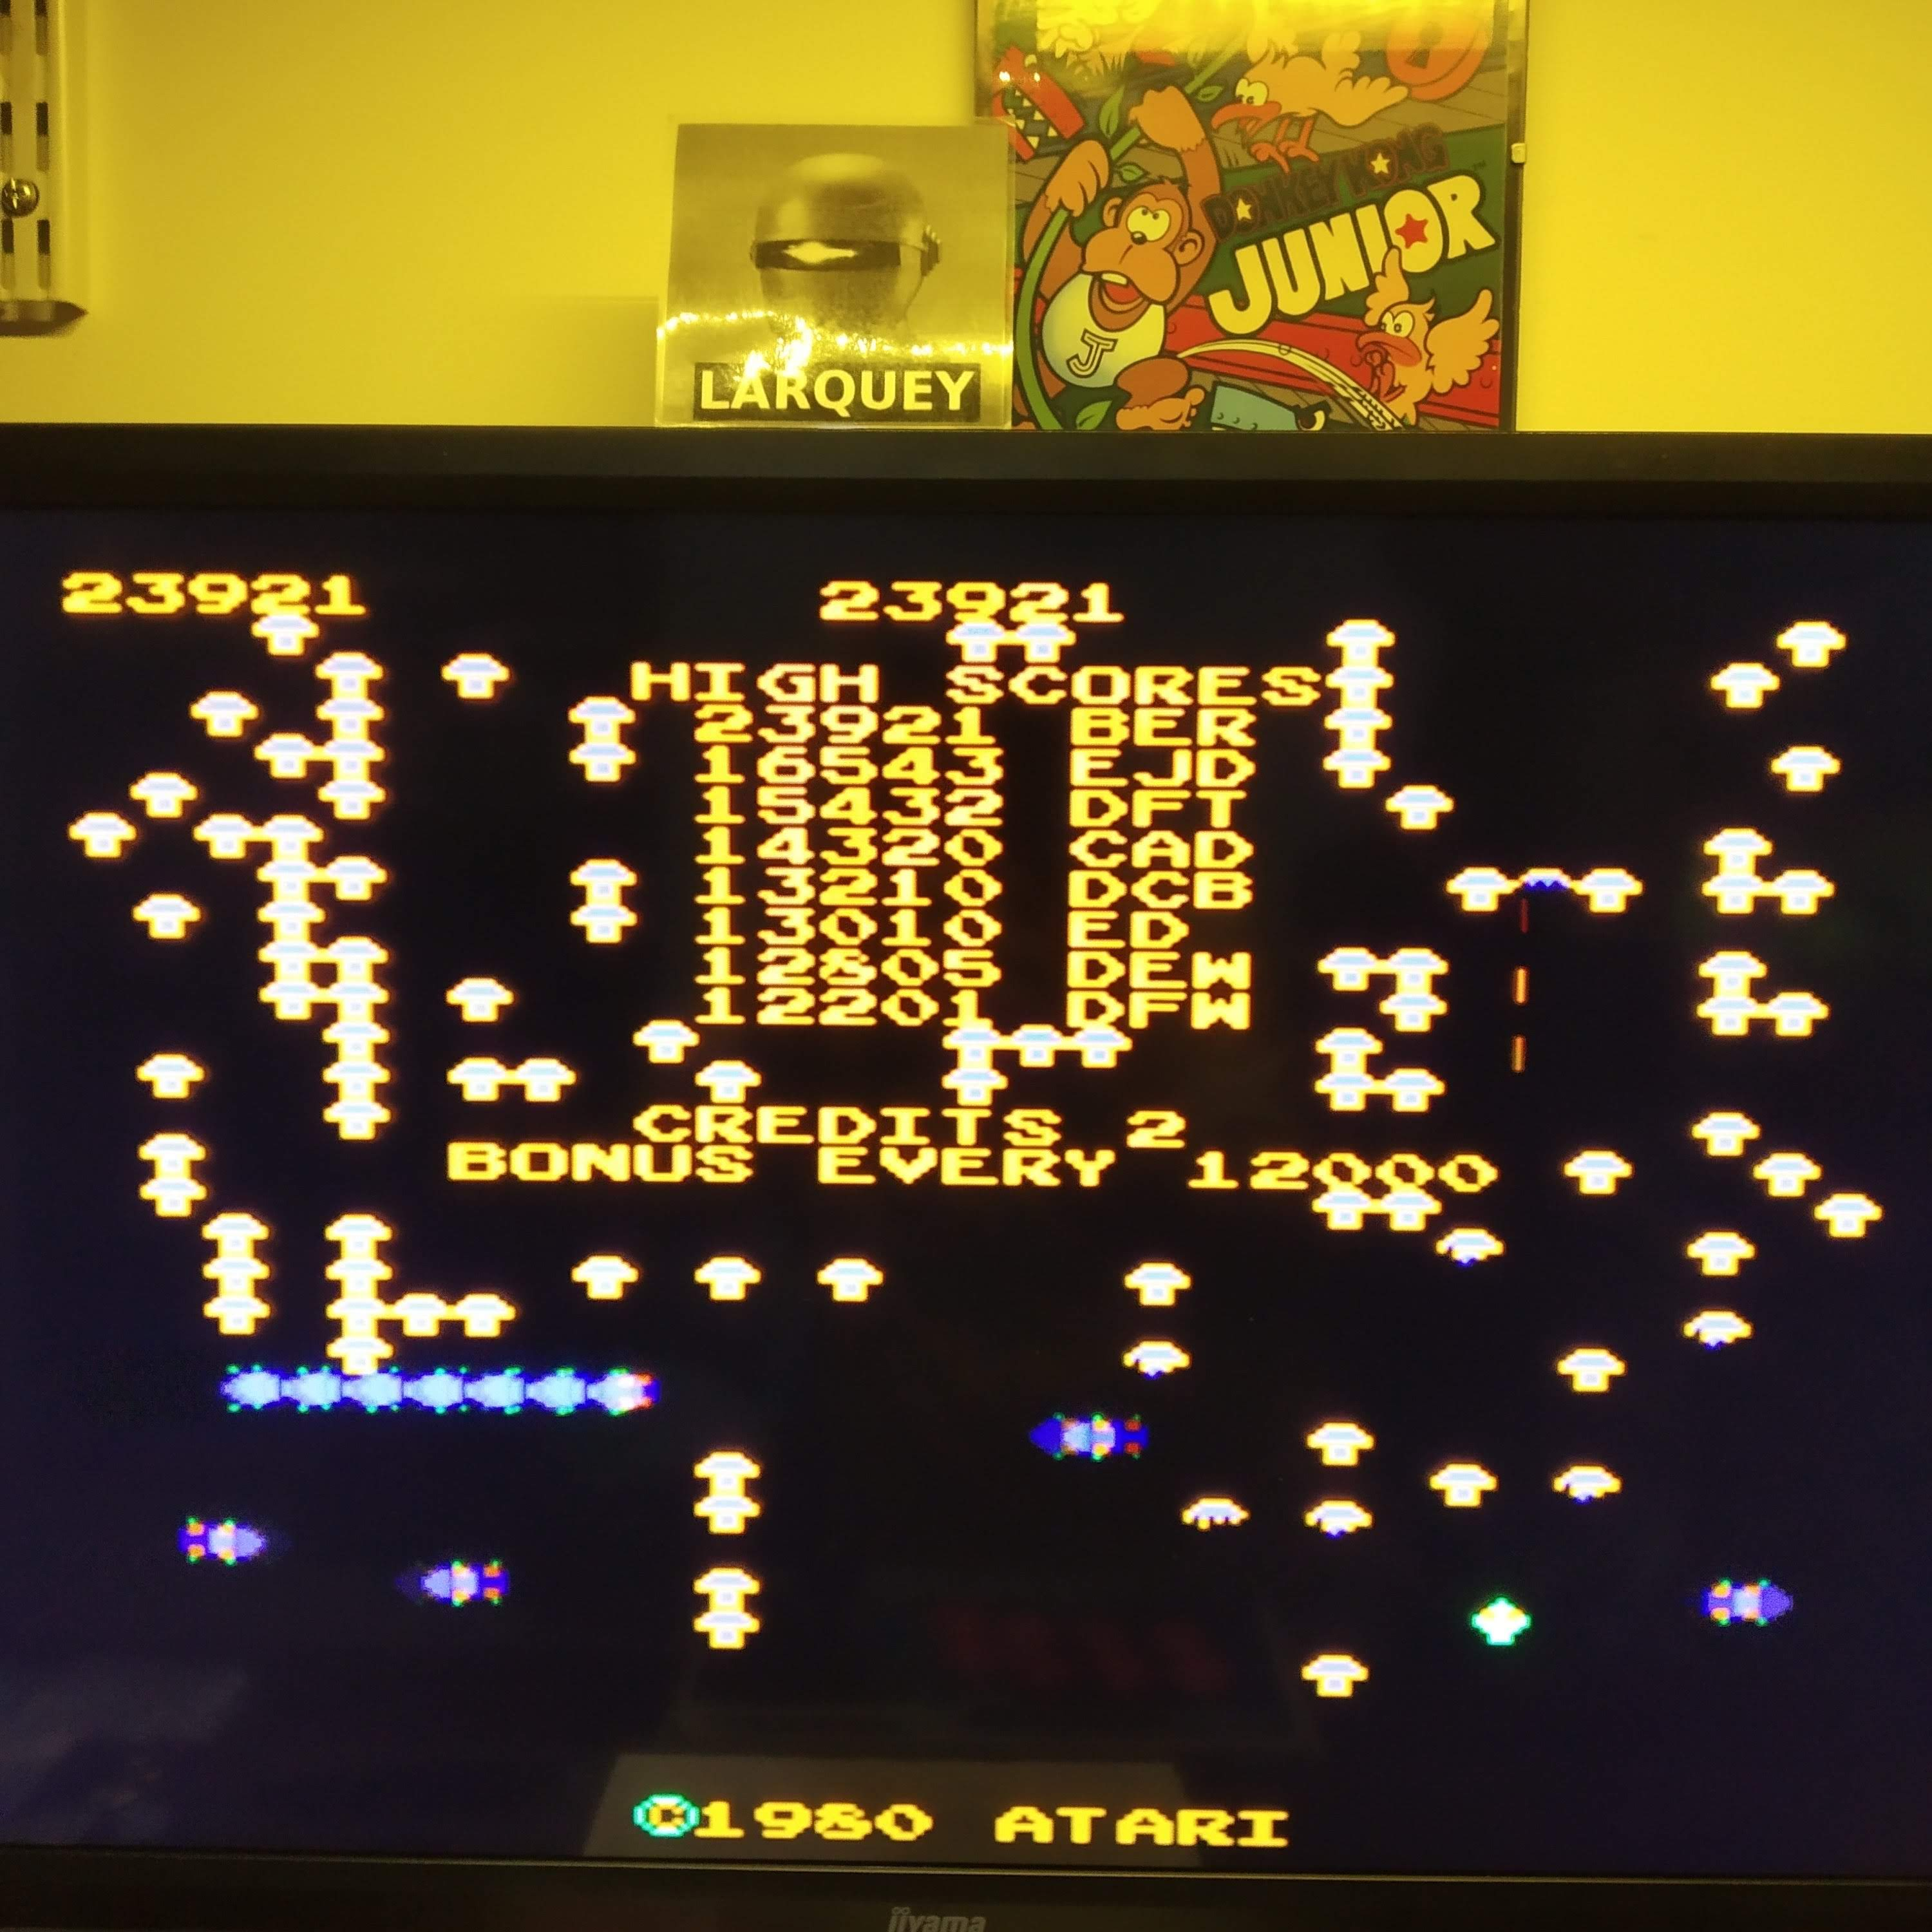 Larquey: Arcade`s Greatest Hits: The Atari Collection 1: Centipede (Playstation 1 Emulated) 23,921 points on 2020-08-21 11:50:40